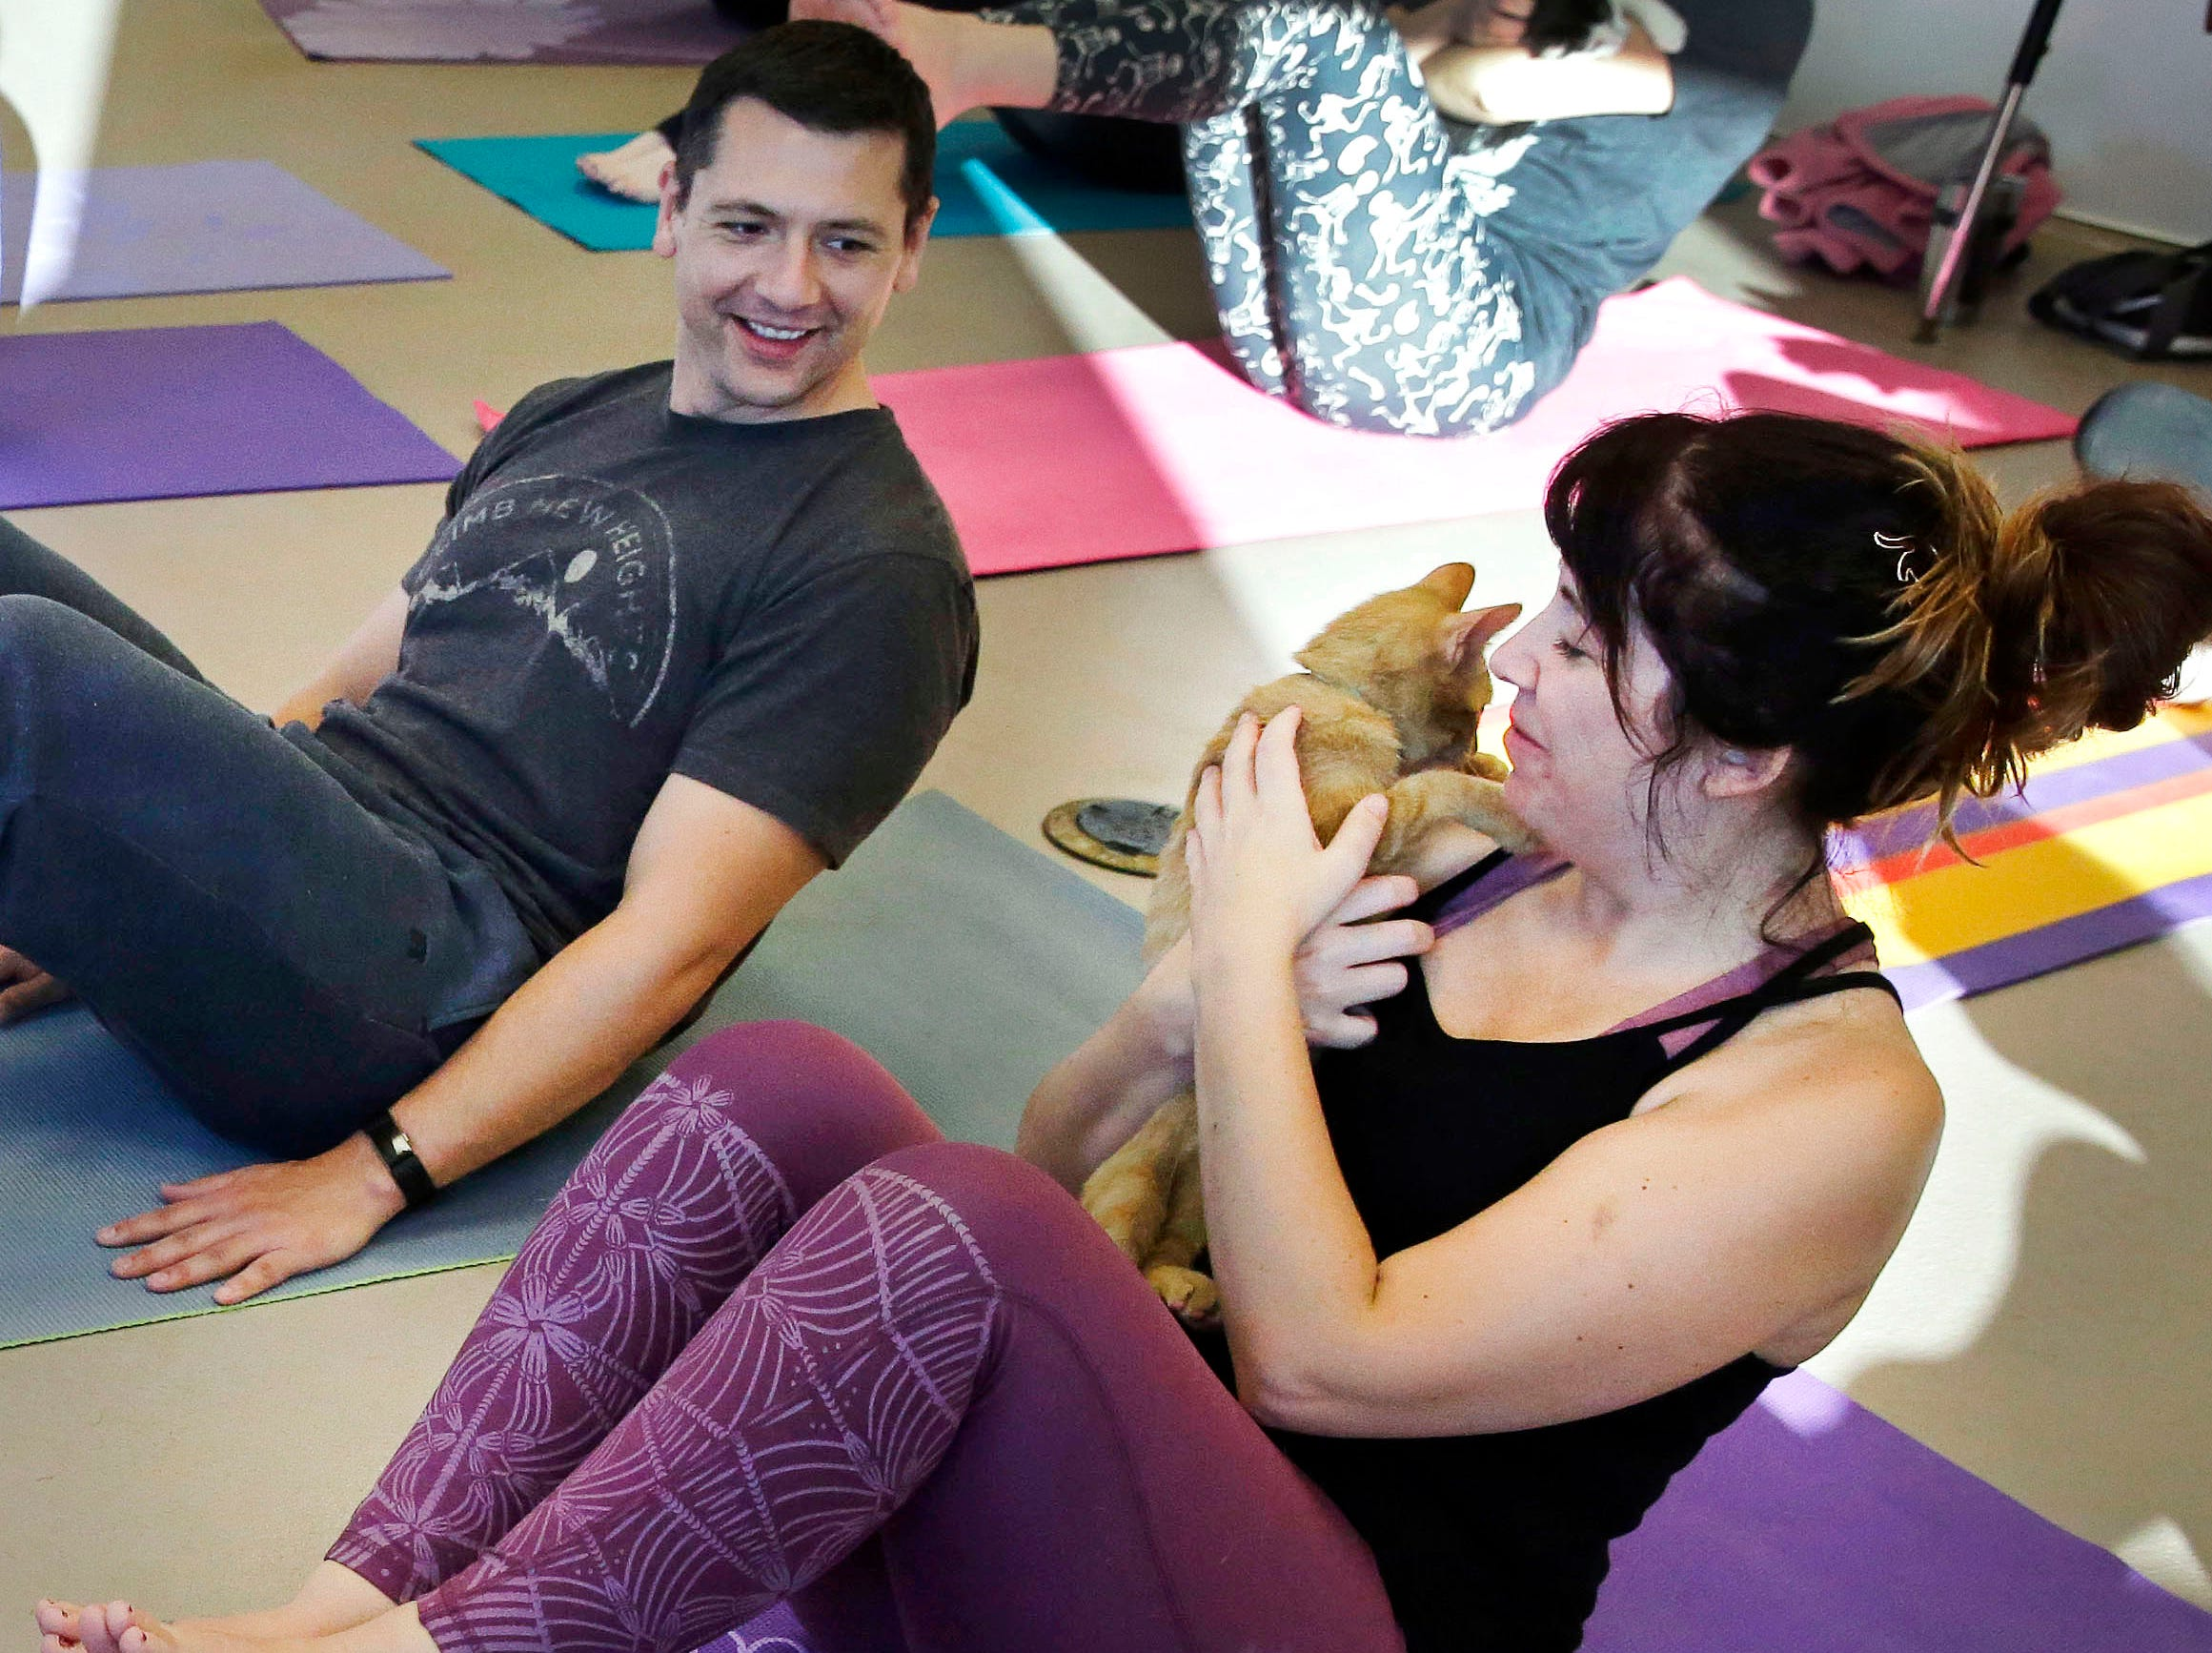 Brice and Lindsey Trickey take part in class and visit with a kitten as the Fox Valley Humane Association and Grace Under Fire Yoga bring together adoptable kittens and yoga class for Kitten Yoga on Saturday, Oct. 13, 2018, at the Fox Valley Humane Association in Appleton, Wis.